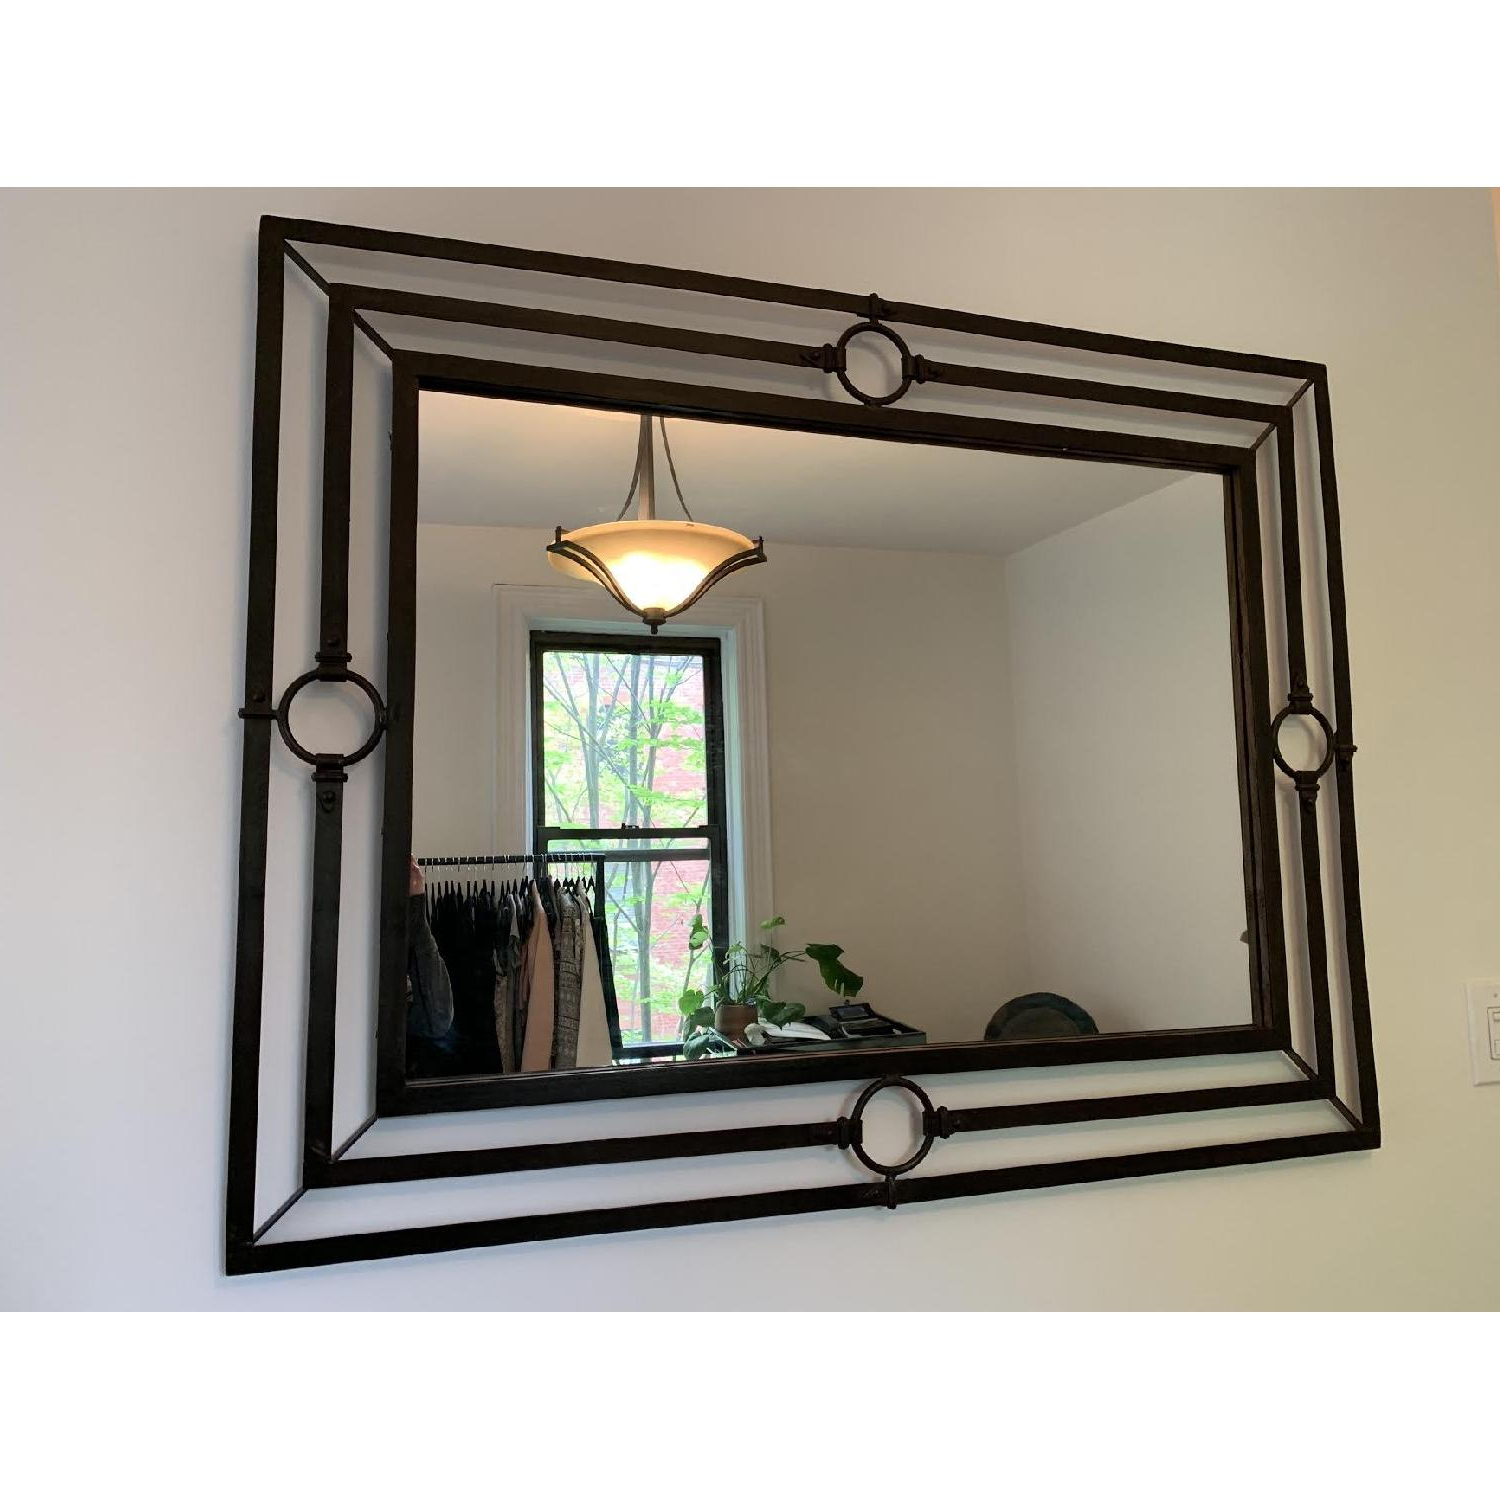 Pottery Barn Wall Mirror For Famous Pottery Barn Wall Mirrors (View 11 of 20)